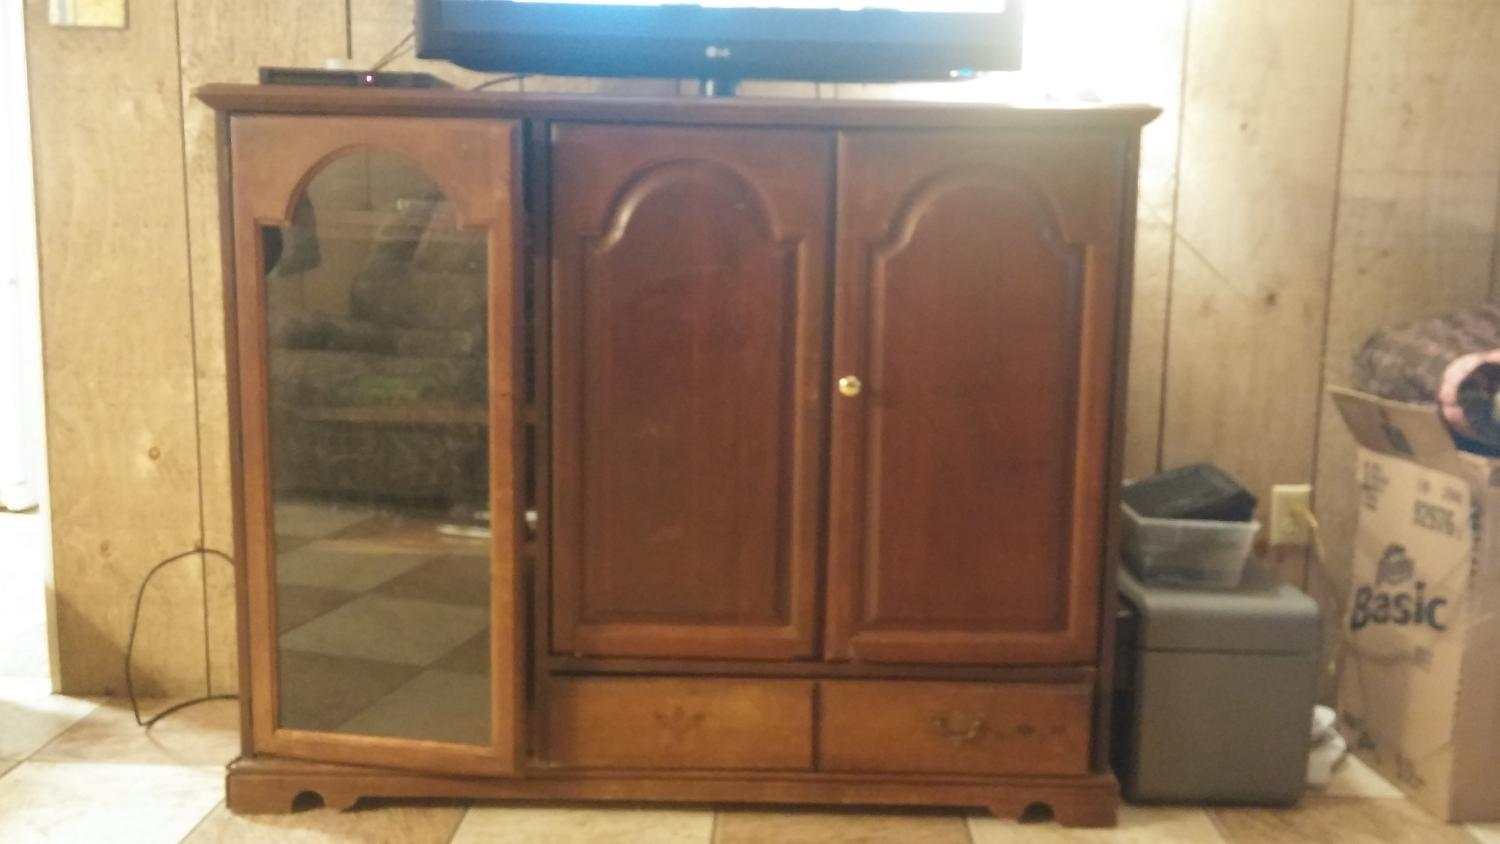 Best home entertainment center for sale in lafayette for Home furniture lafayette la locations